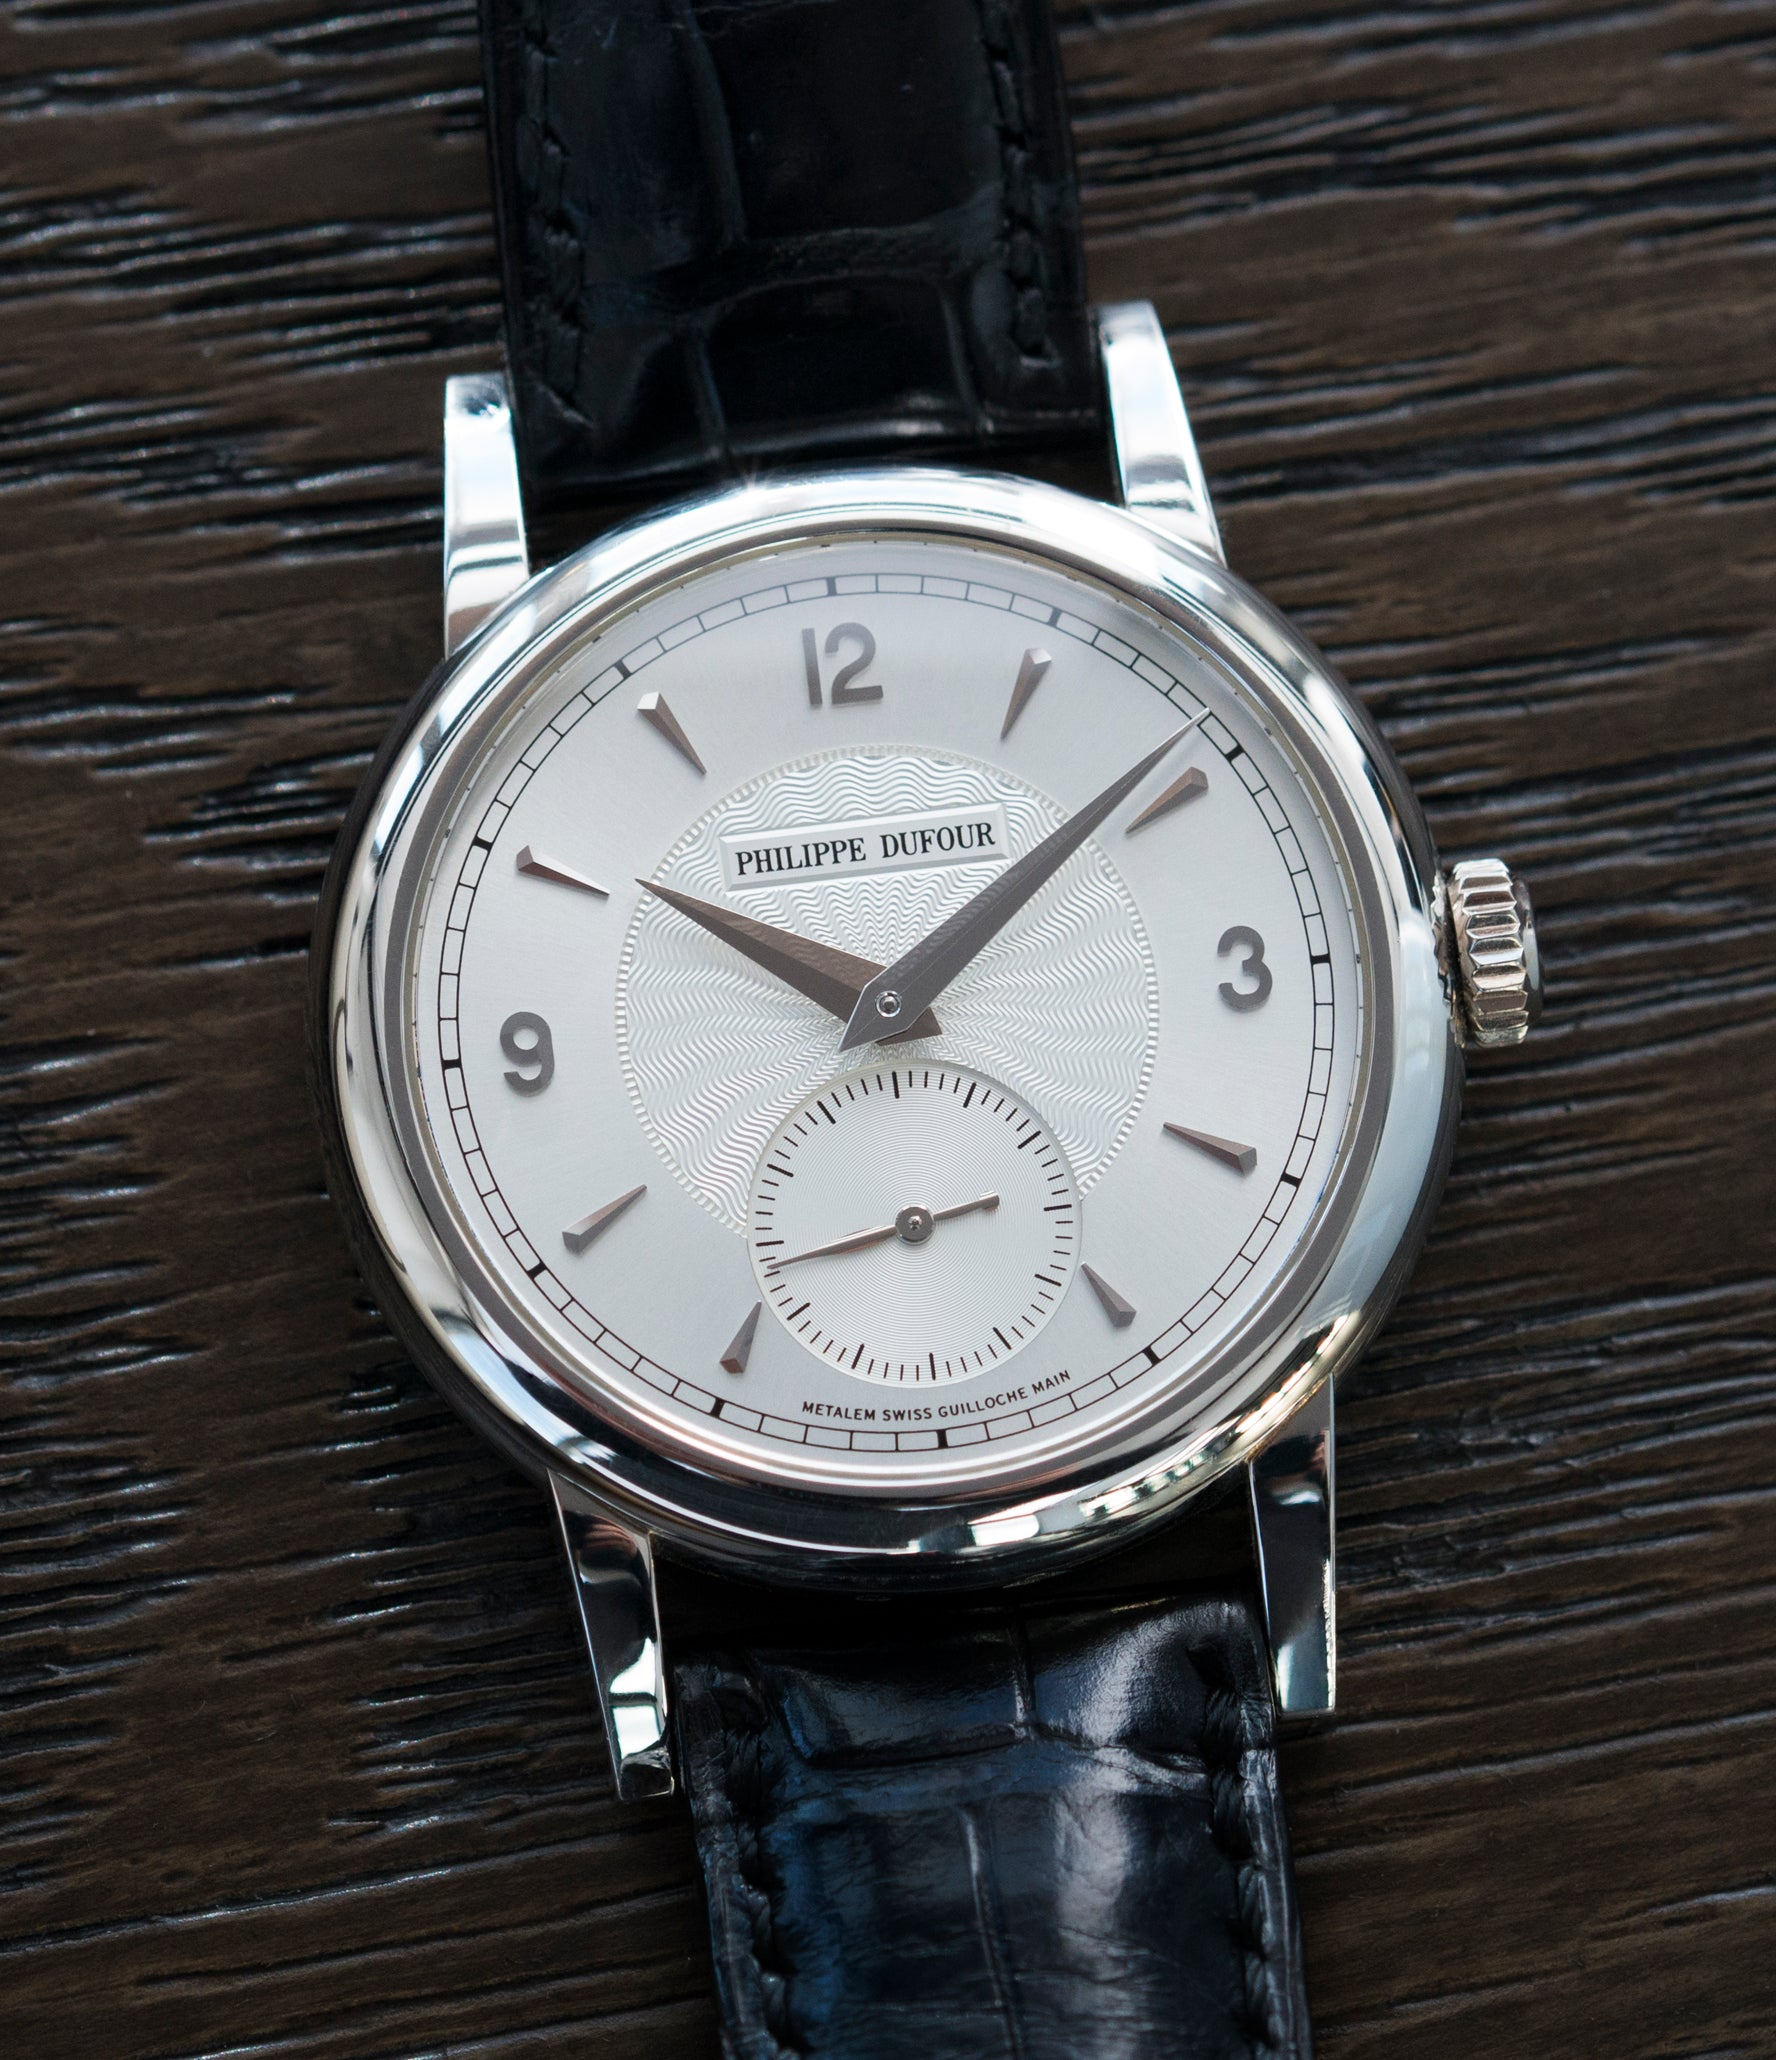 rare men's luxury watch Philippe Dufour Simplicity platinum time-only dress watch for sale online at A Collected Man London UK approved specialist of preowned independent watchmakers